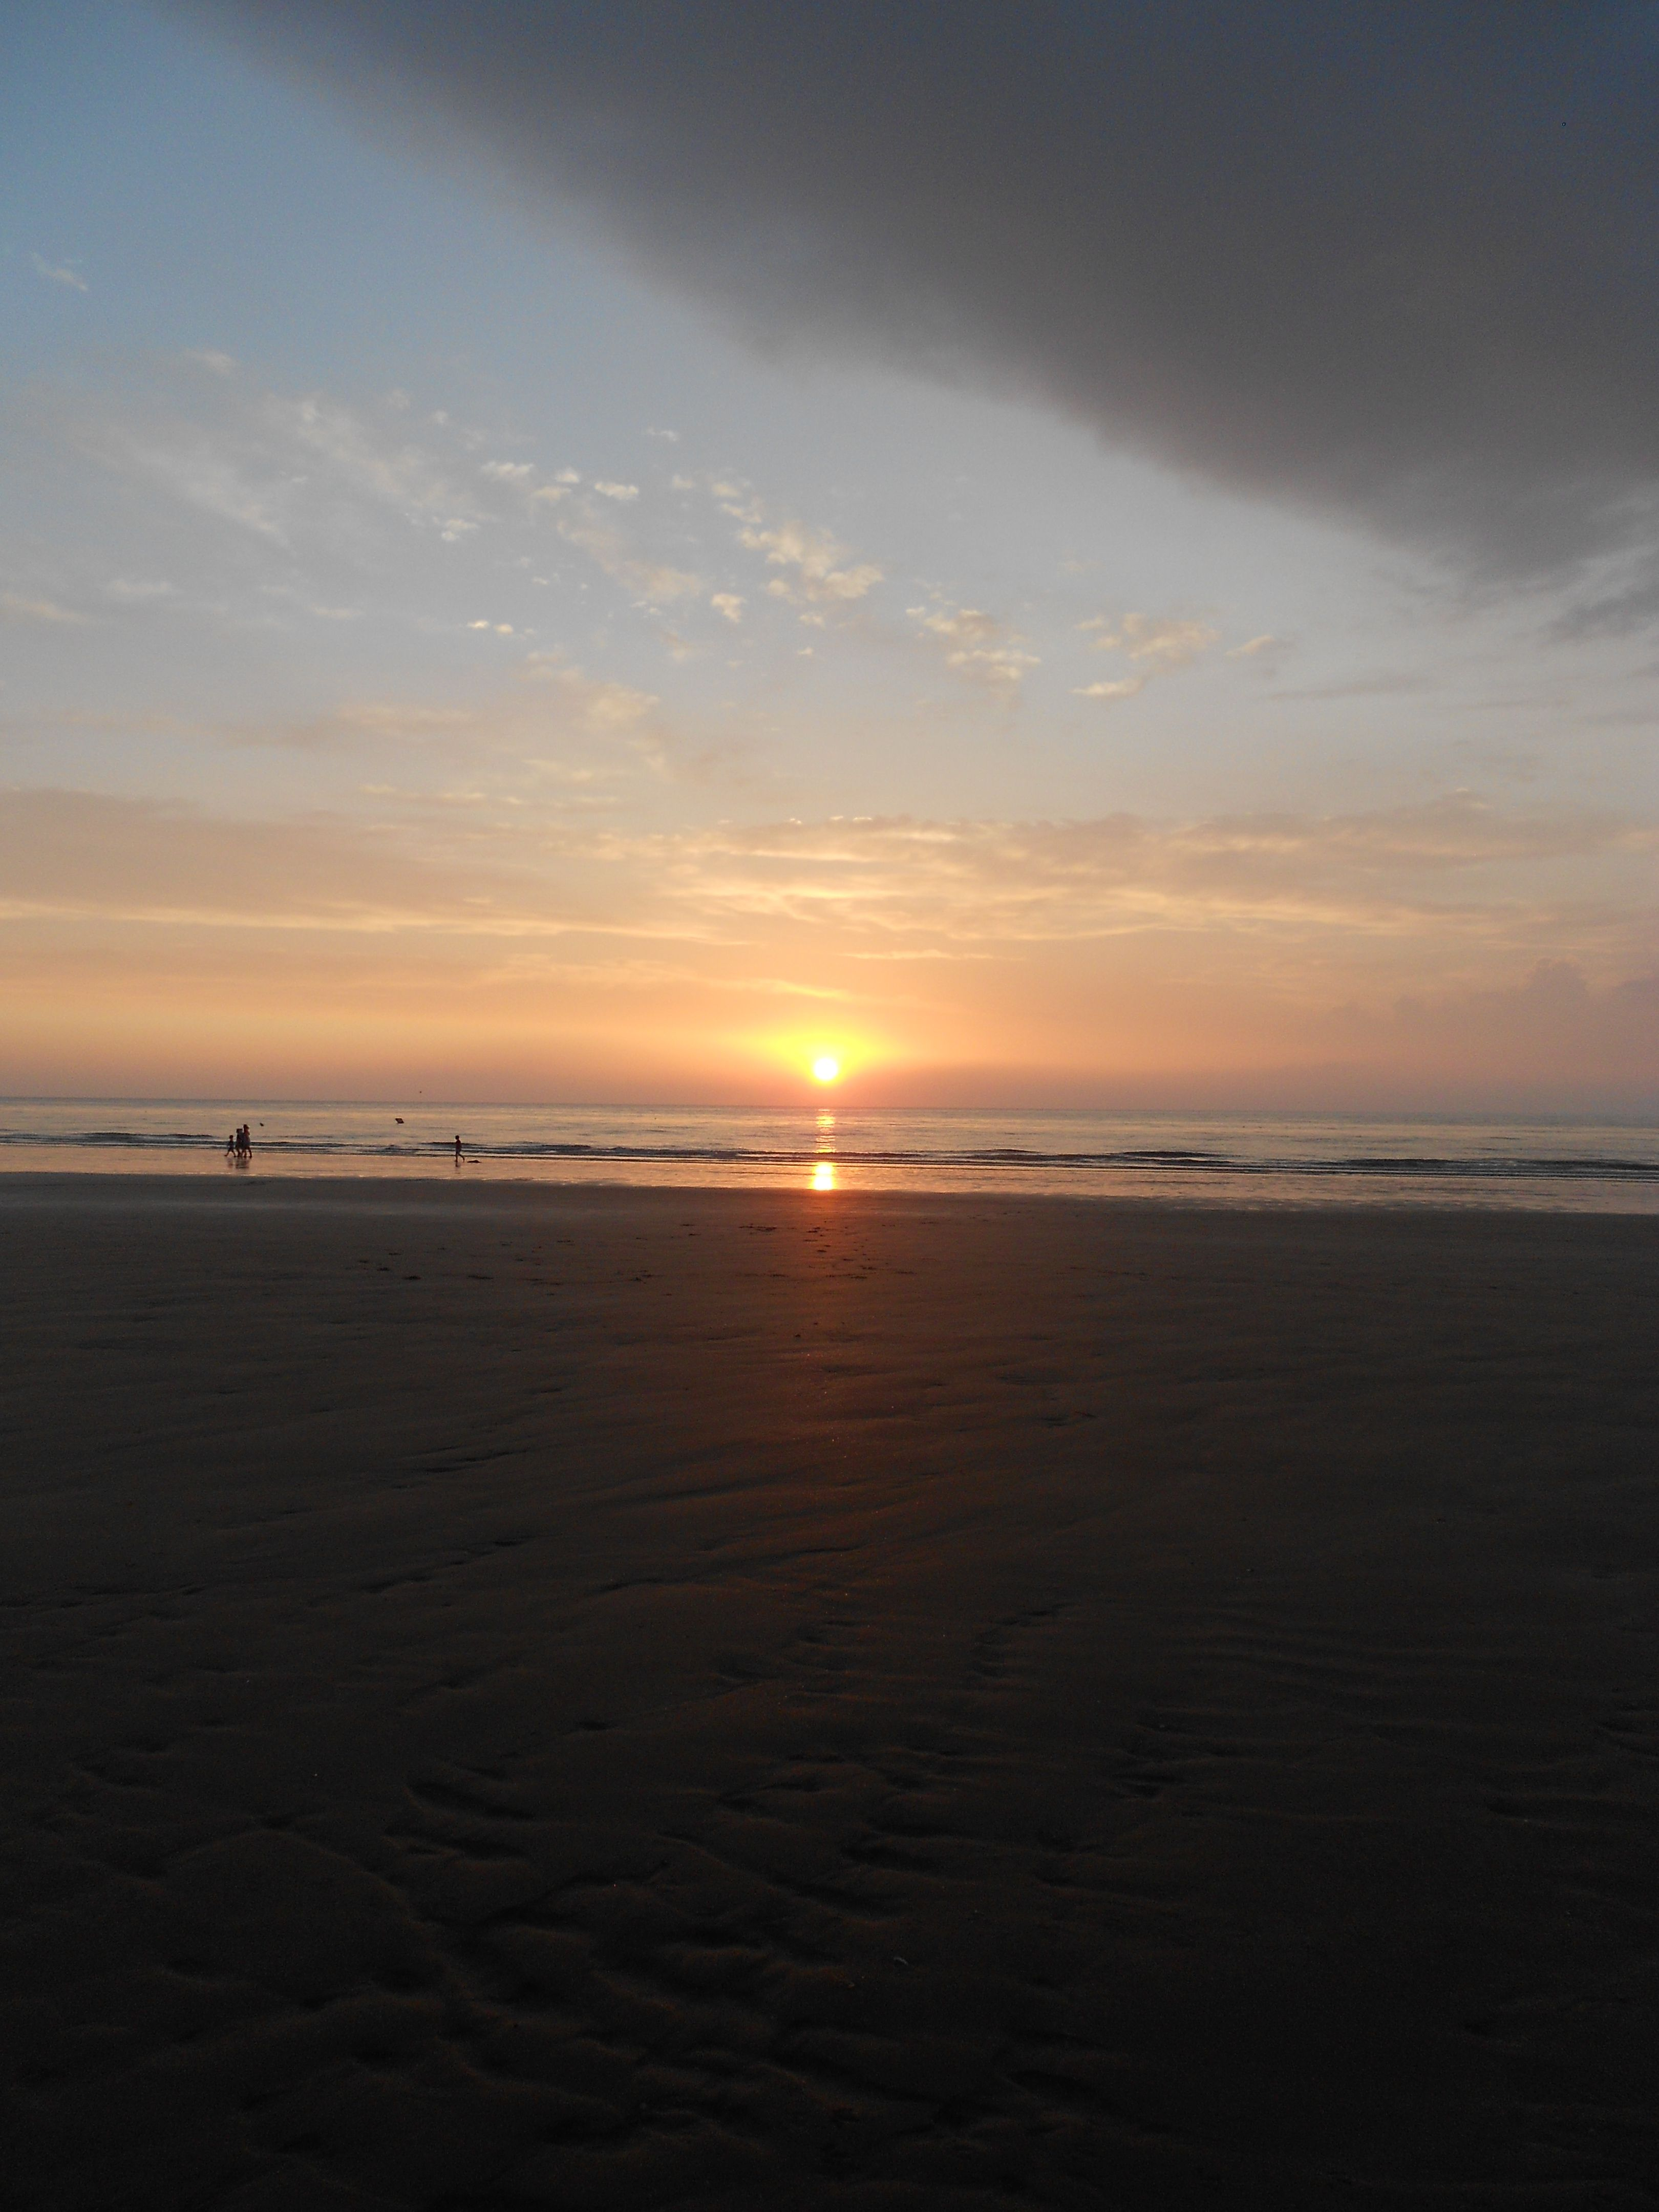 my last sunset at Normandie.